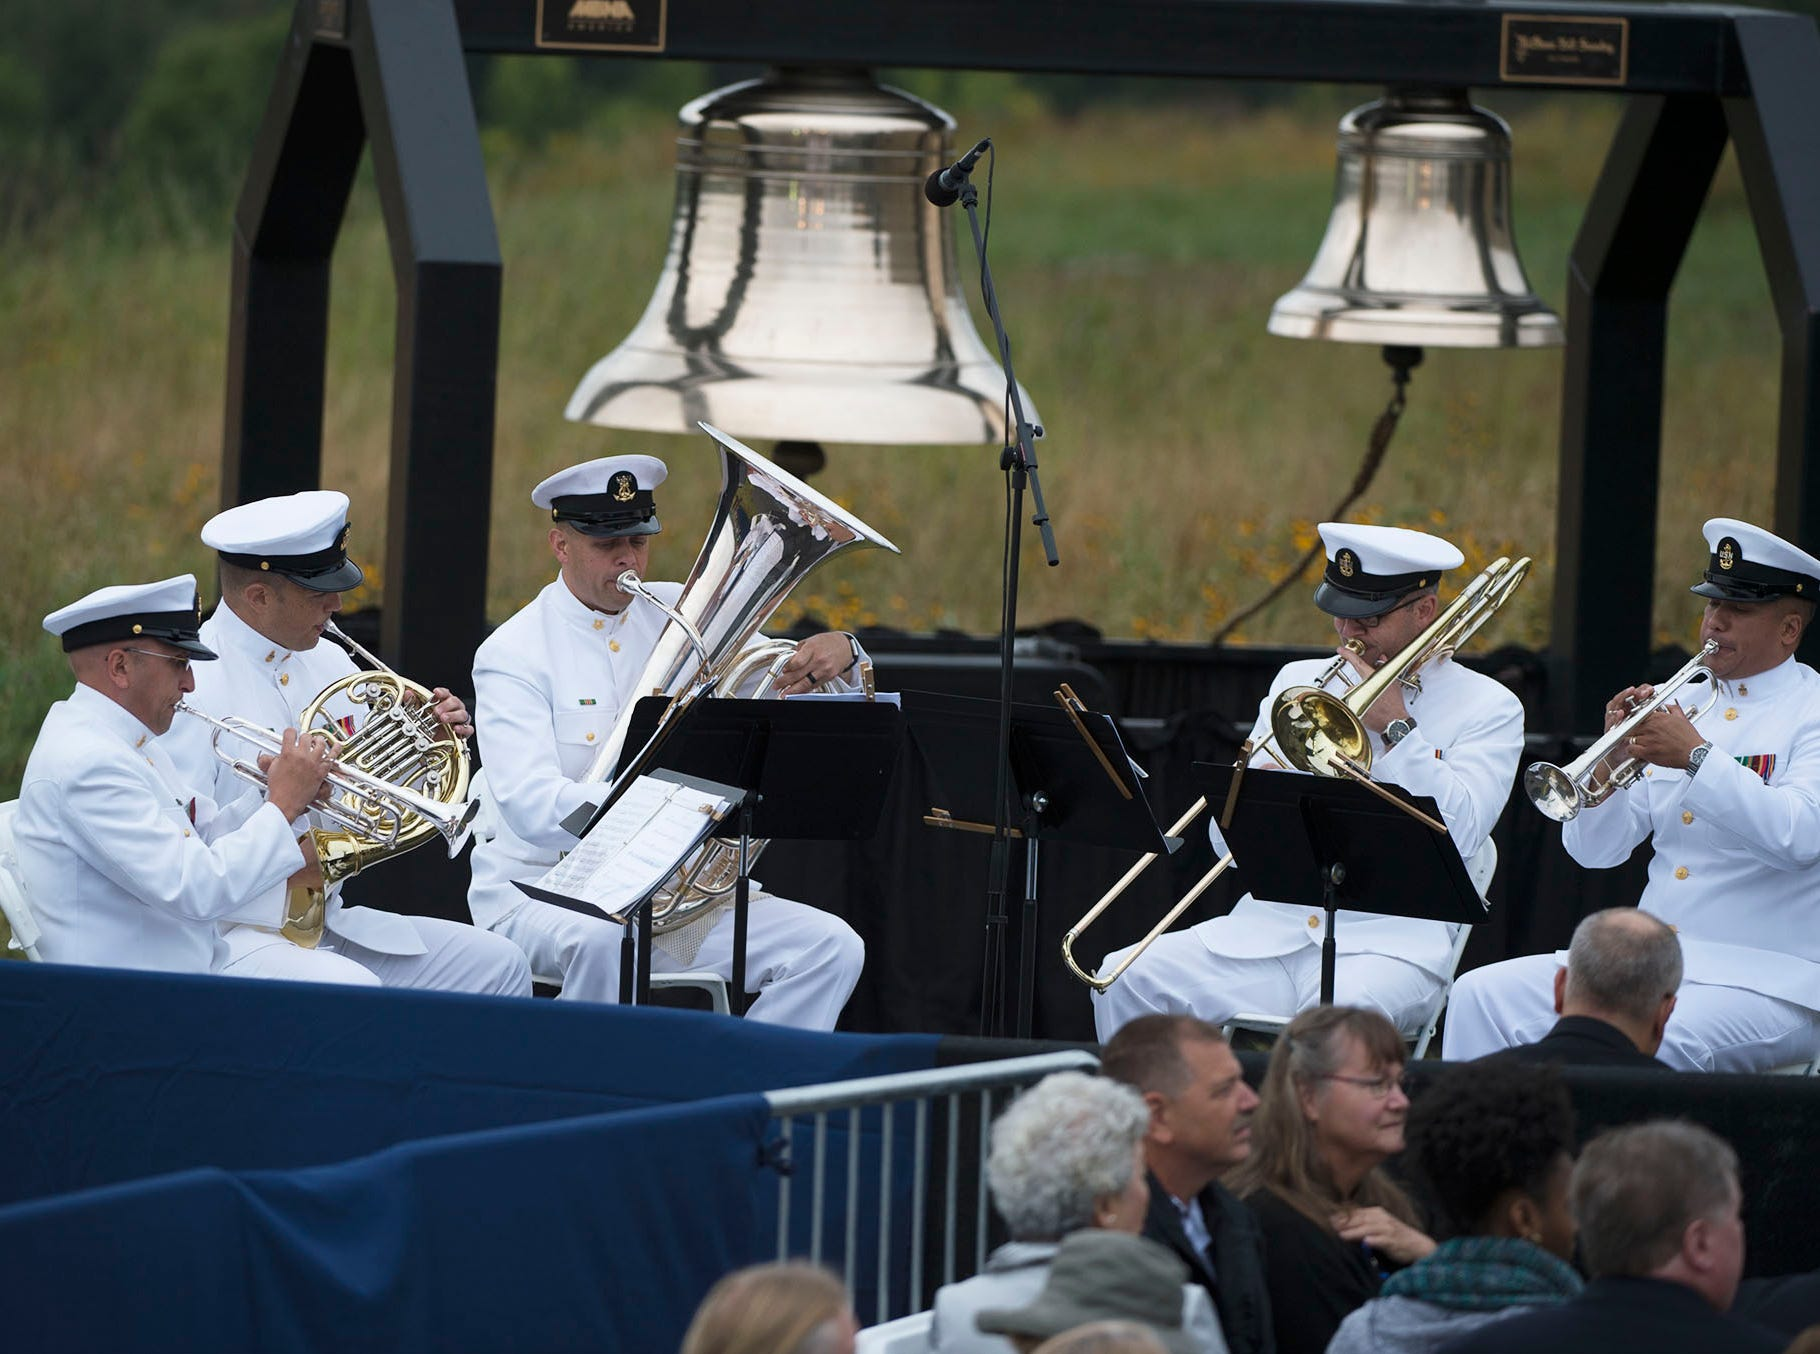 U.S. Navy band performs. The Flight 93 National Memorial's 17th Annual September 11 ceremony is being held at the Memorial Plaza in Shanksville, Pa.